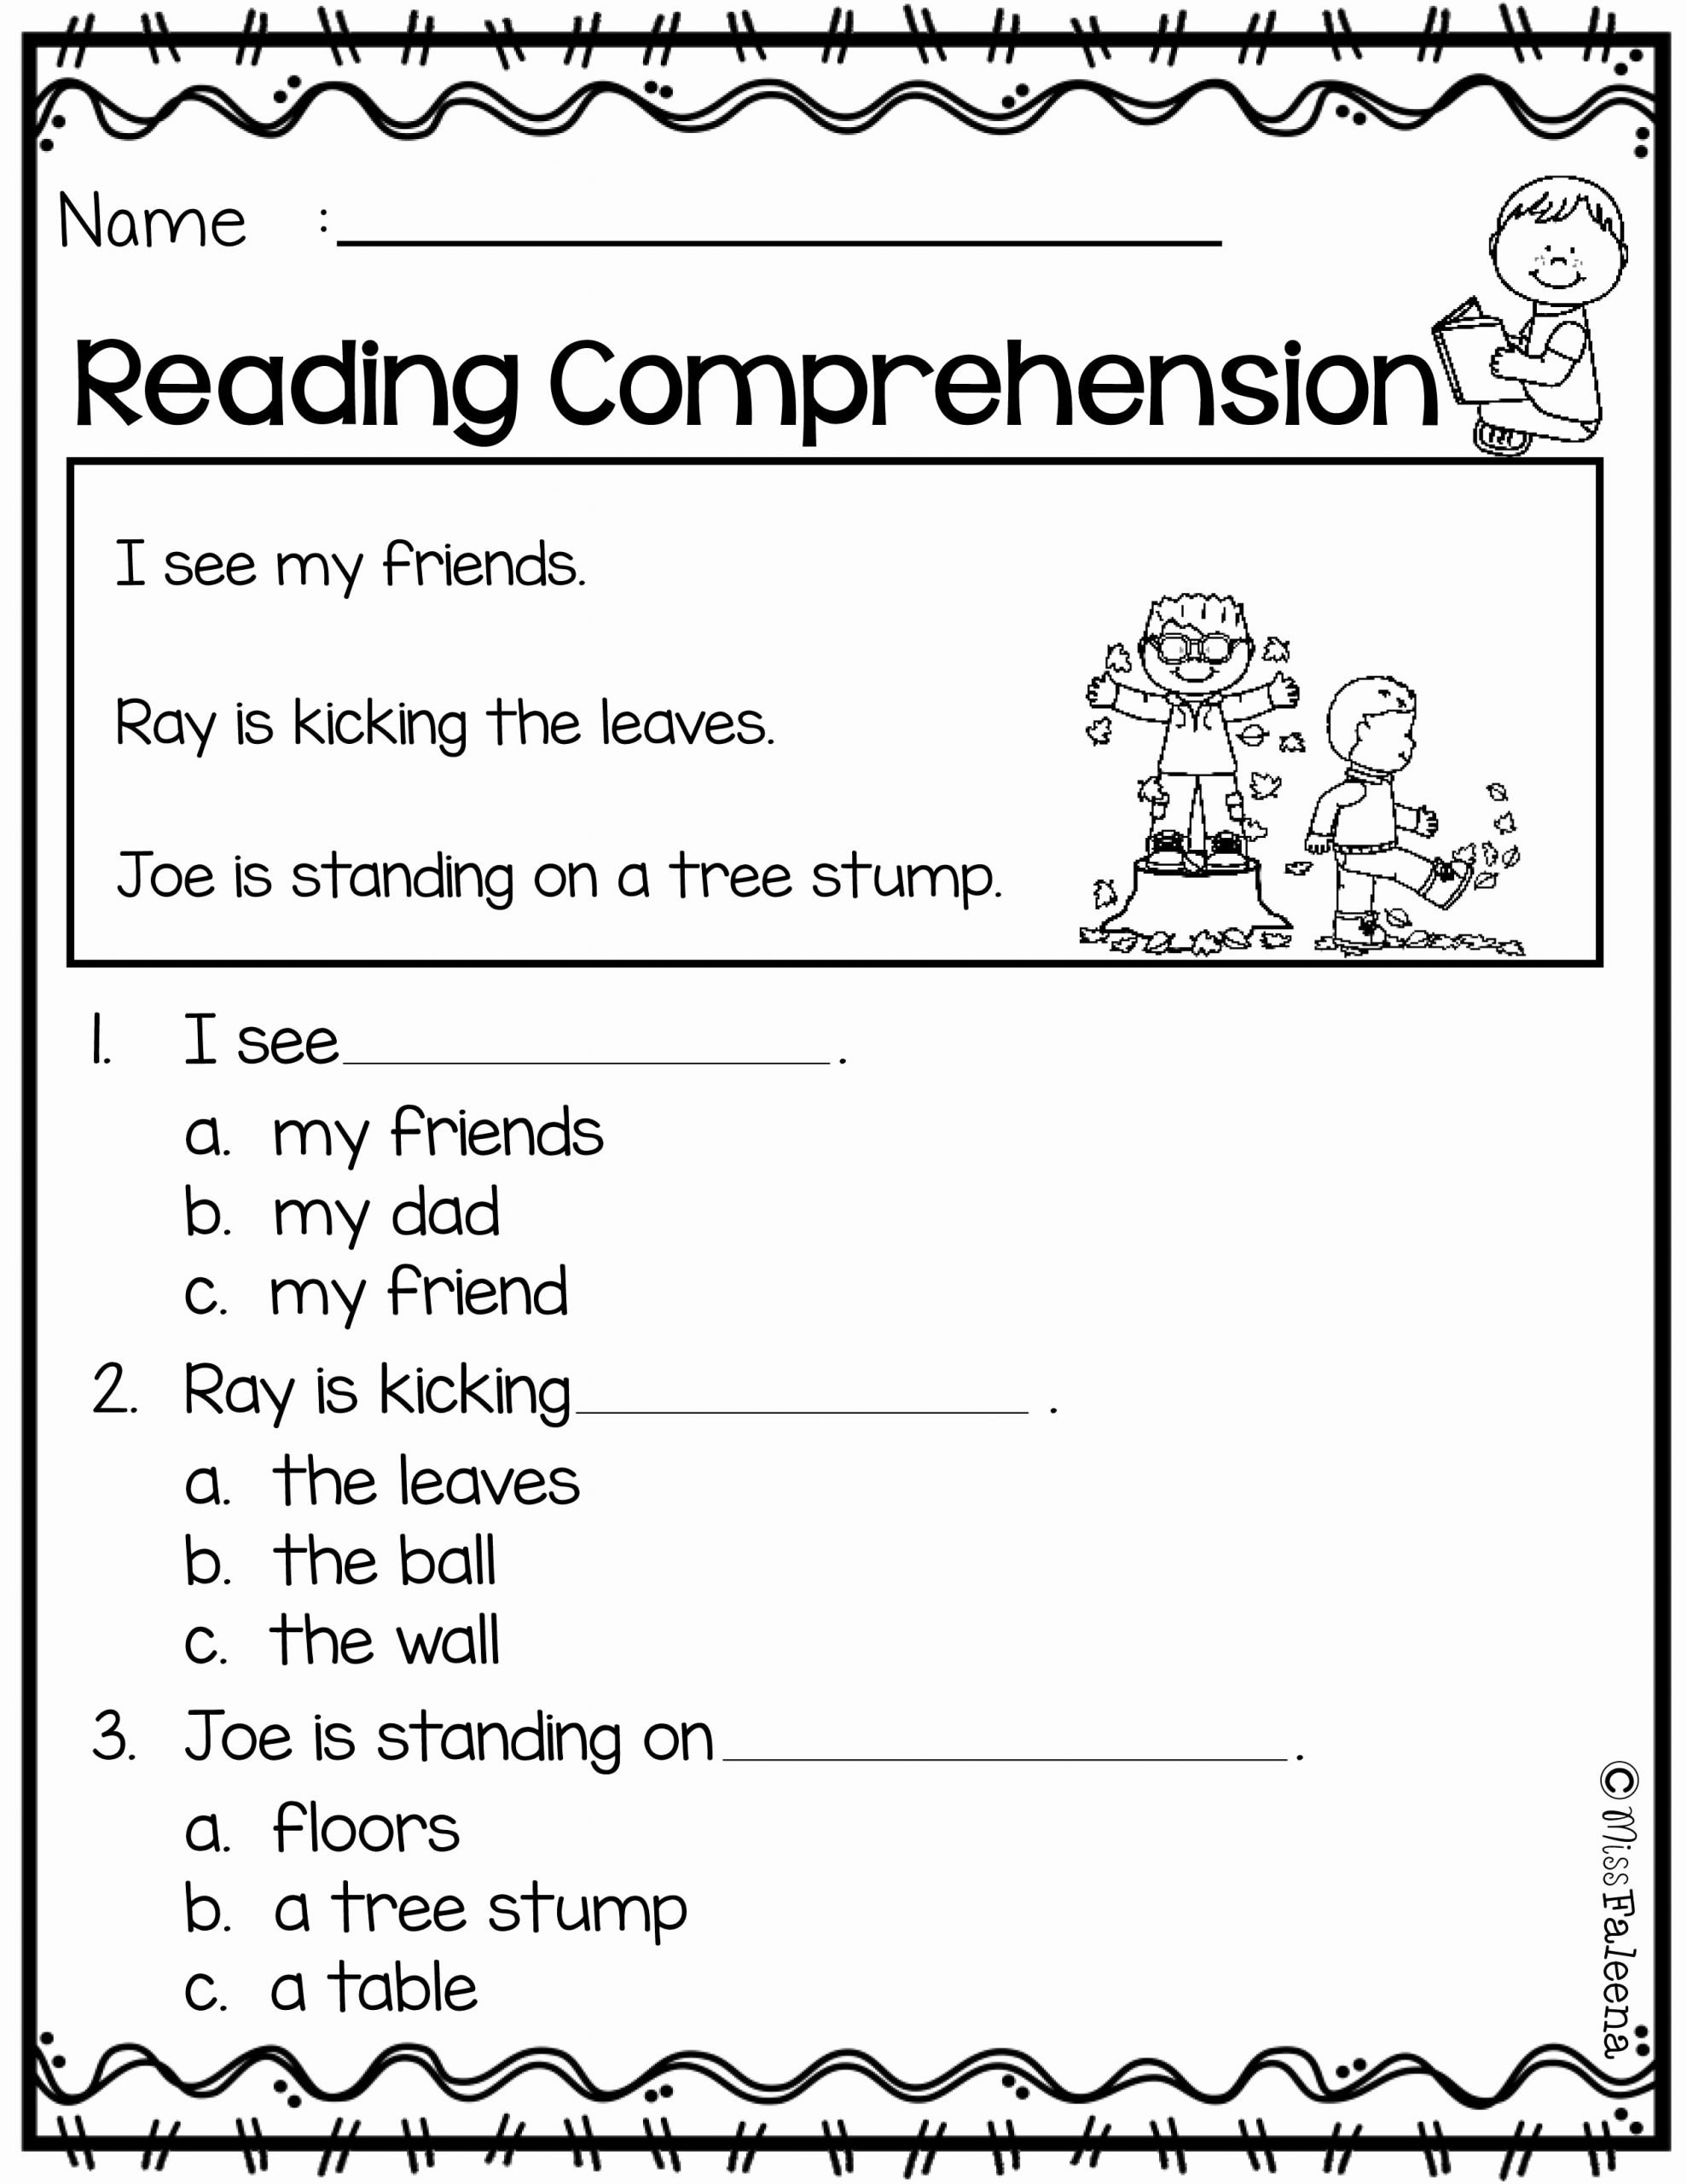 Comprehension Worksheets for Preschoolers New Free Reading Prehension